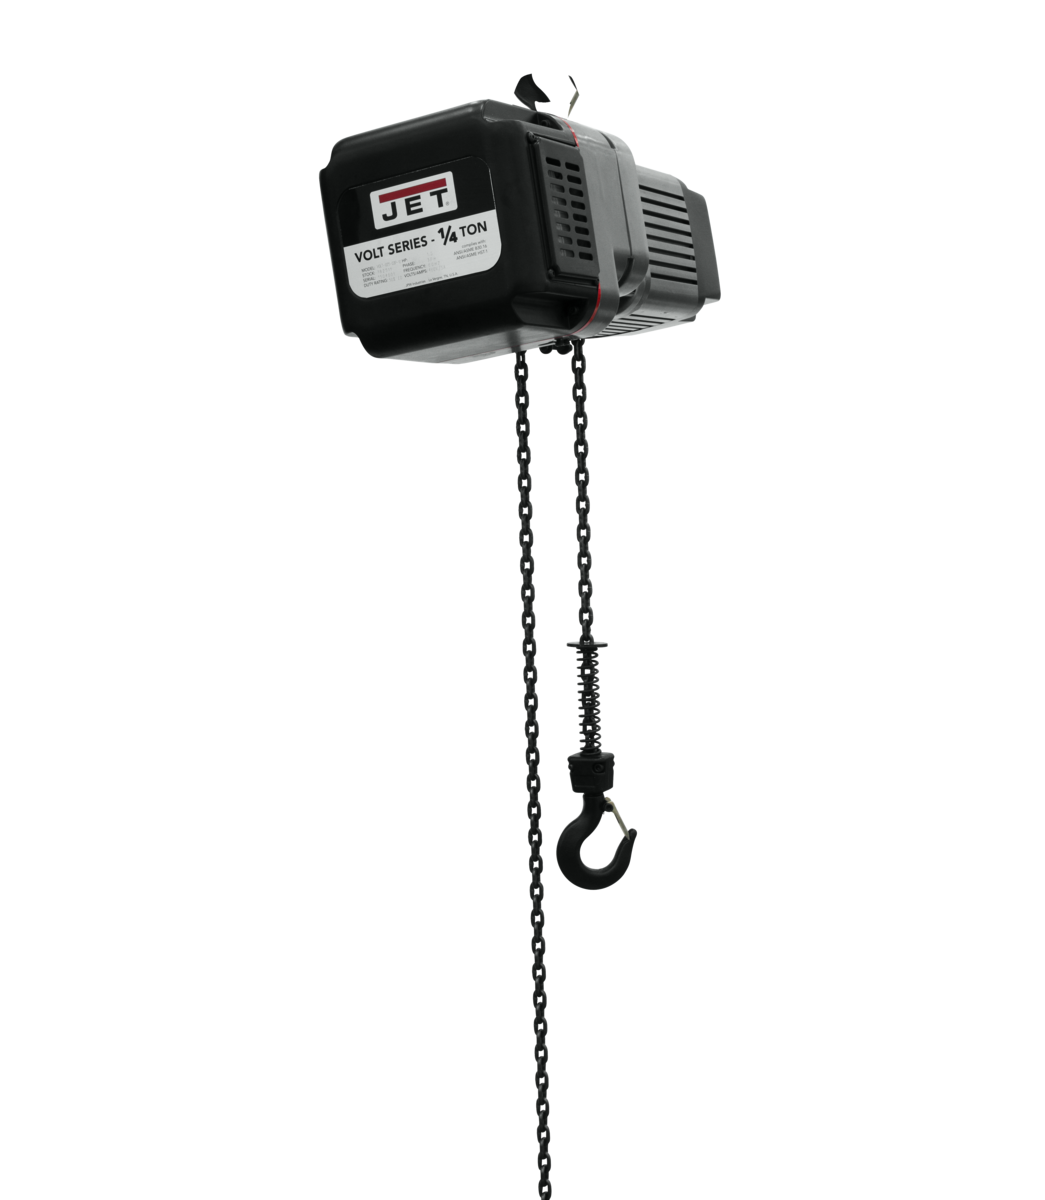 VOLT 1/4T VARIABLE-SPEED ELECTRIC HOIST 1PH/3PH 230V 10' LIFT